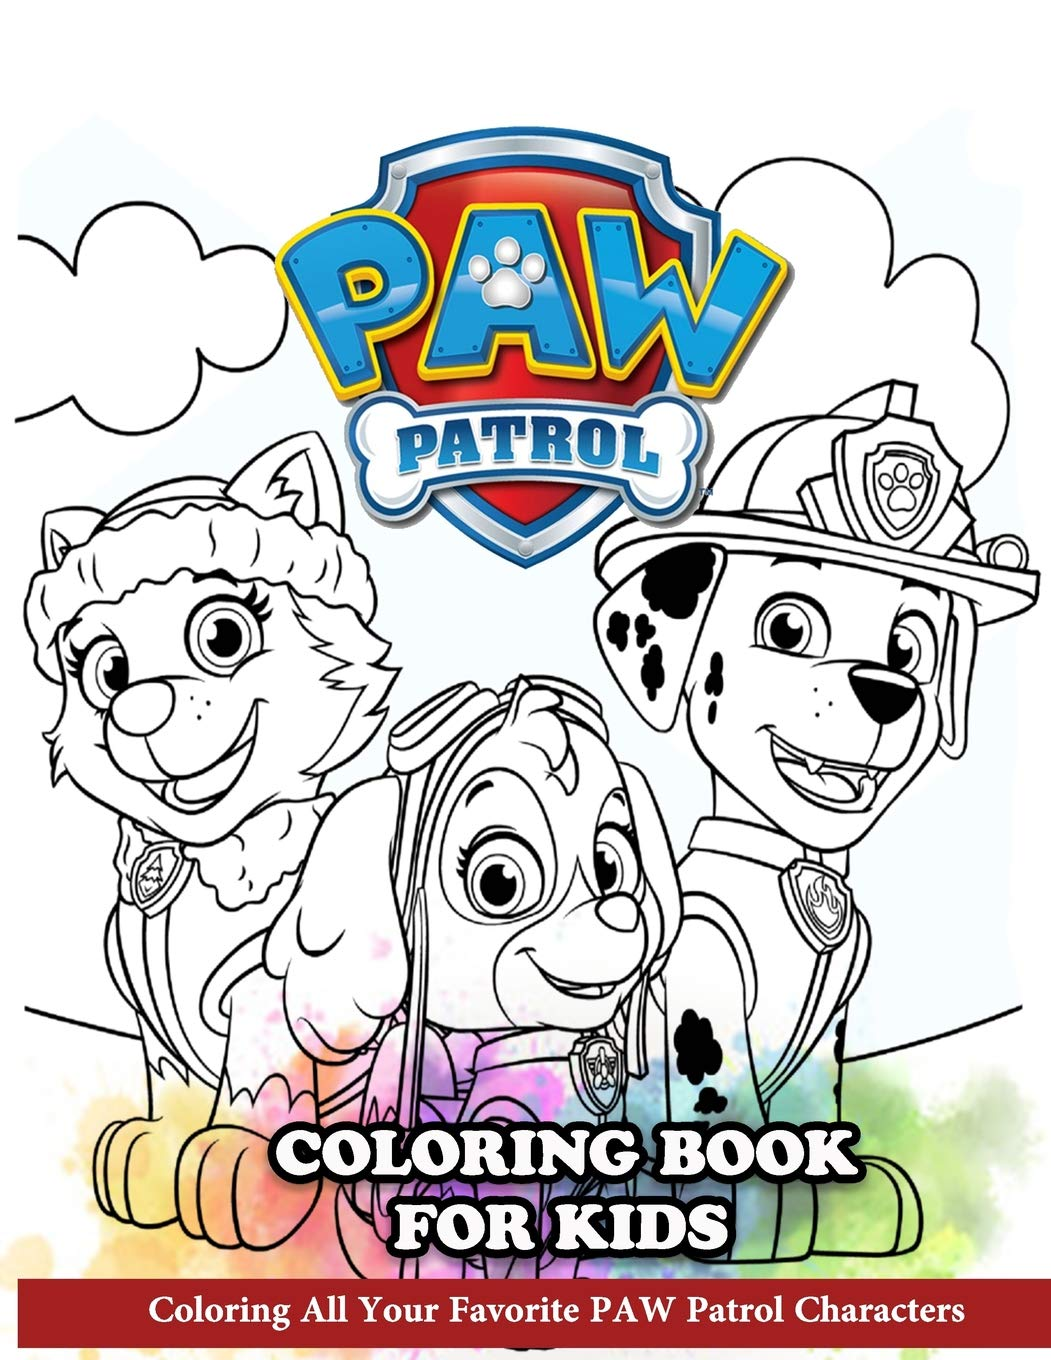 PAW Patrol Coloring Book for Kids: Coloring All Your ...